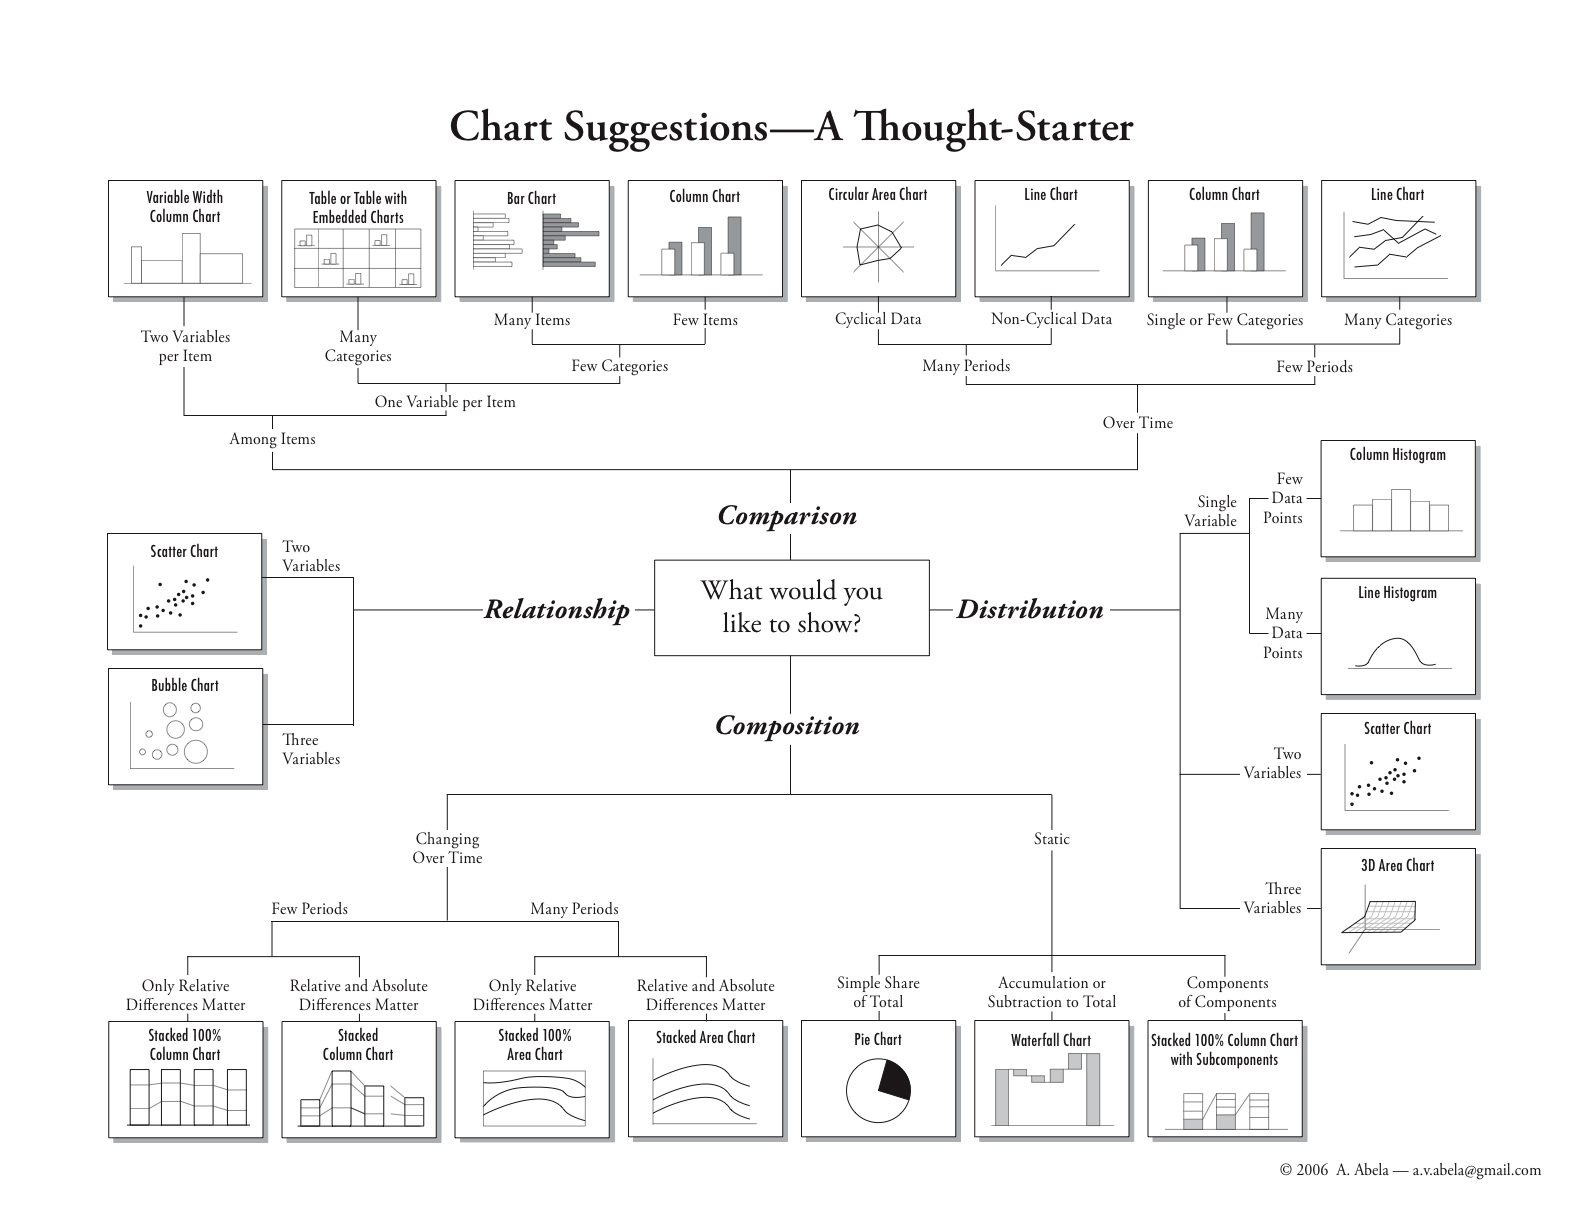 Chart Suggestions: A Thought Starter Infographic (Andrew Abela ...